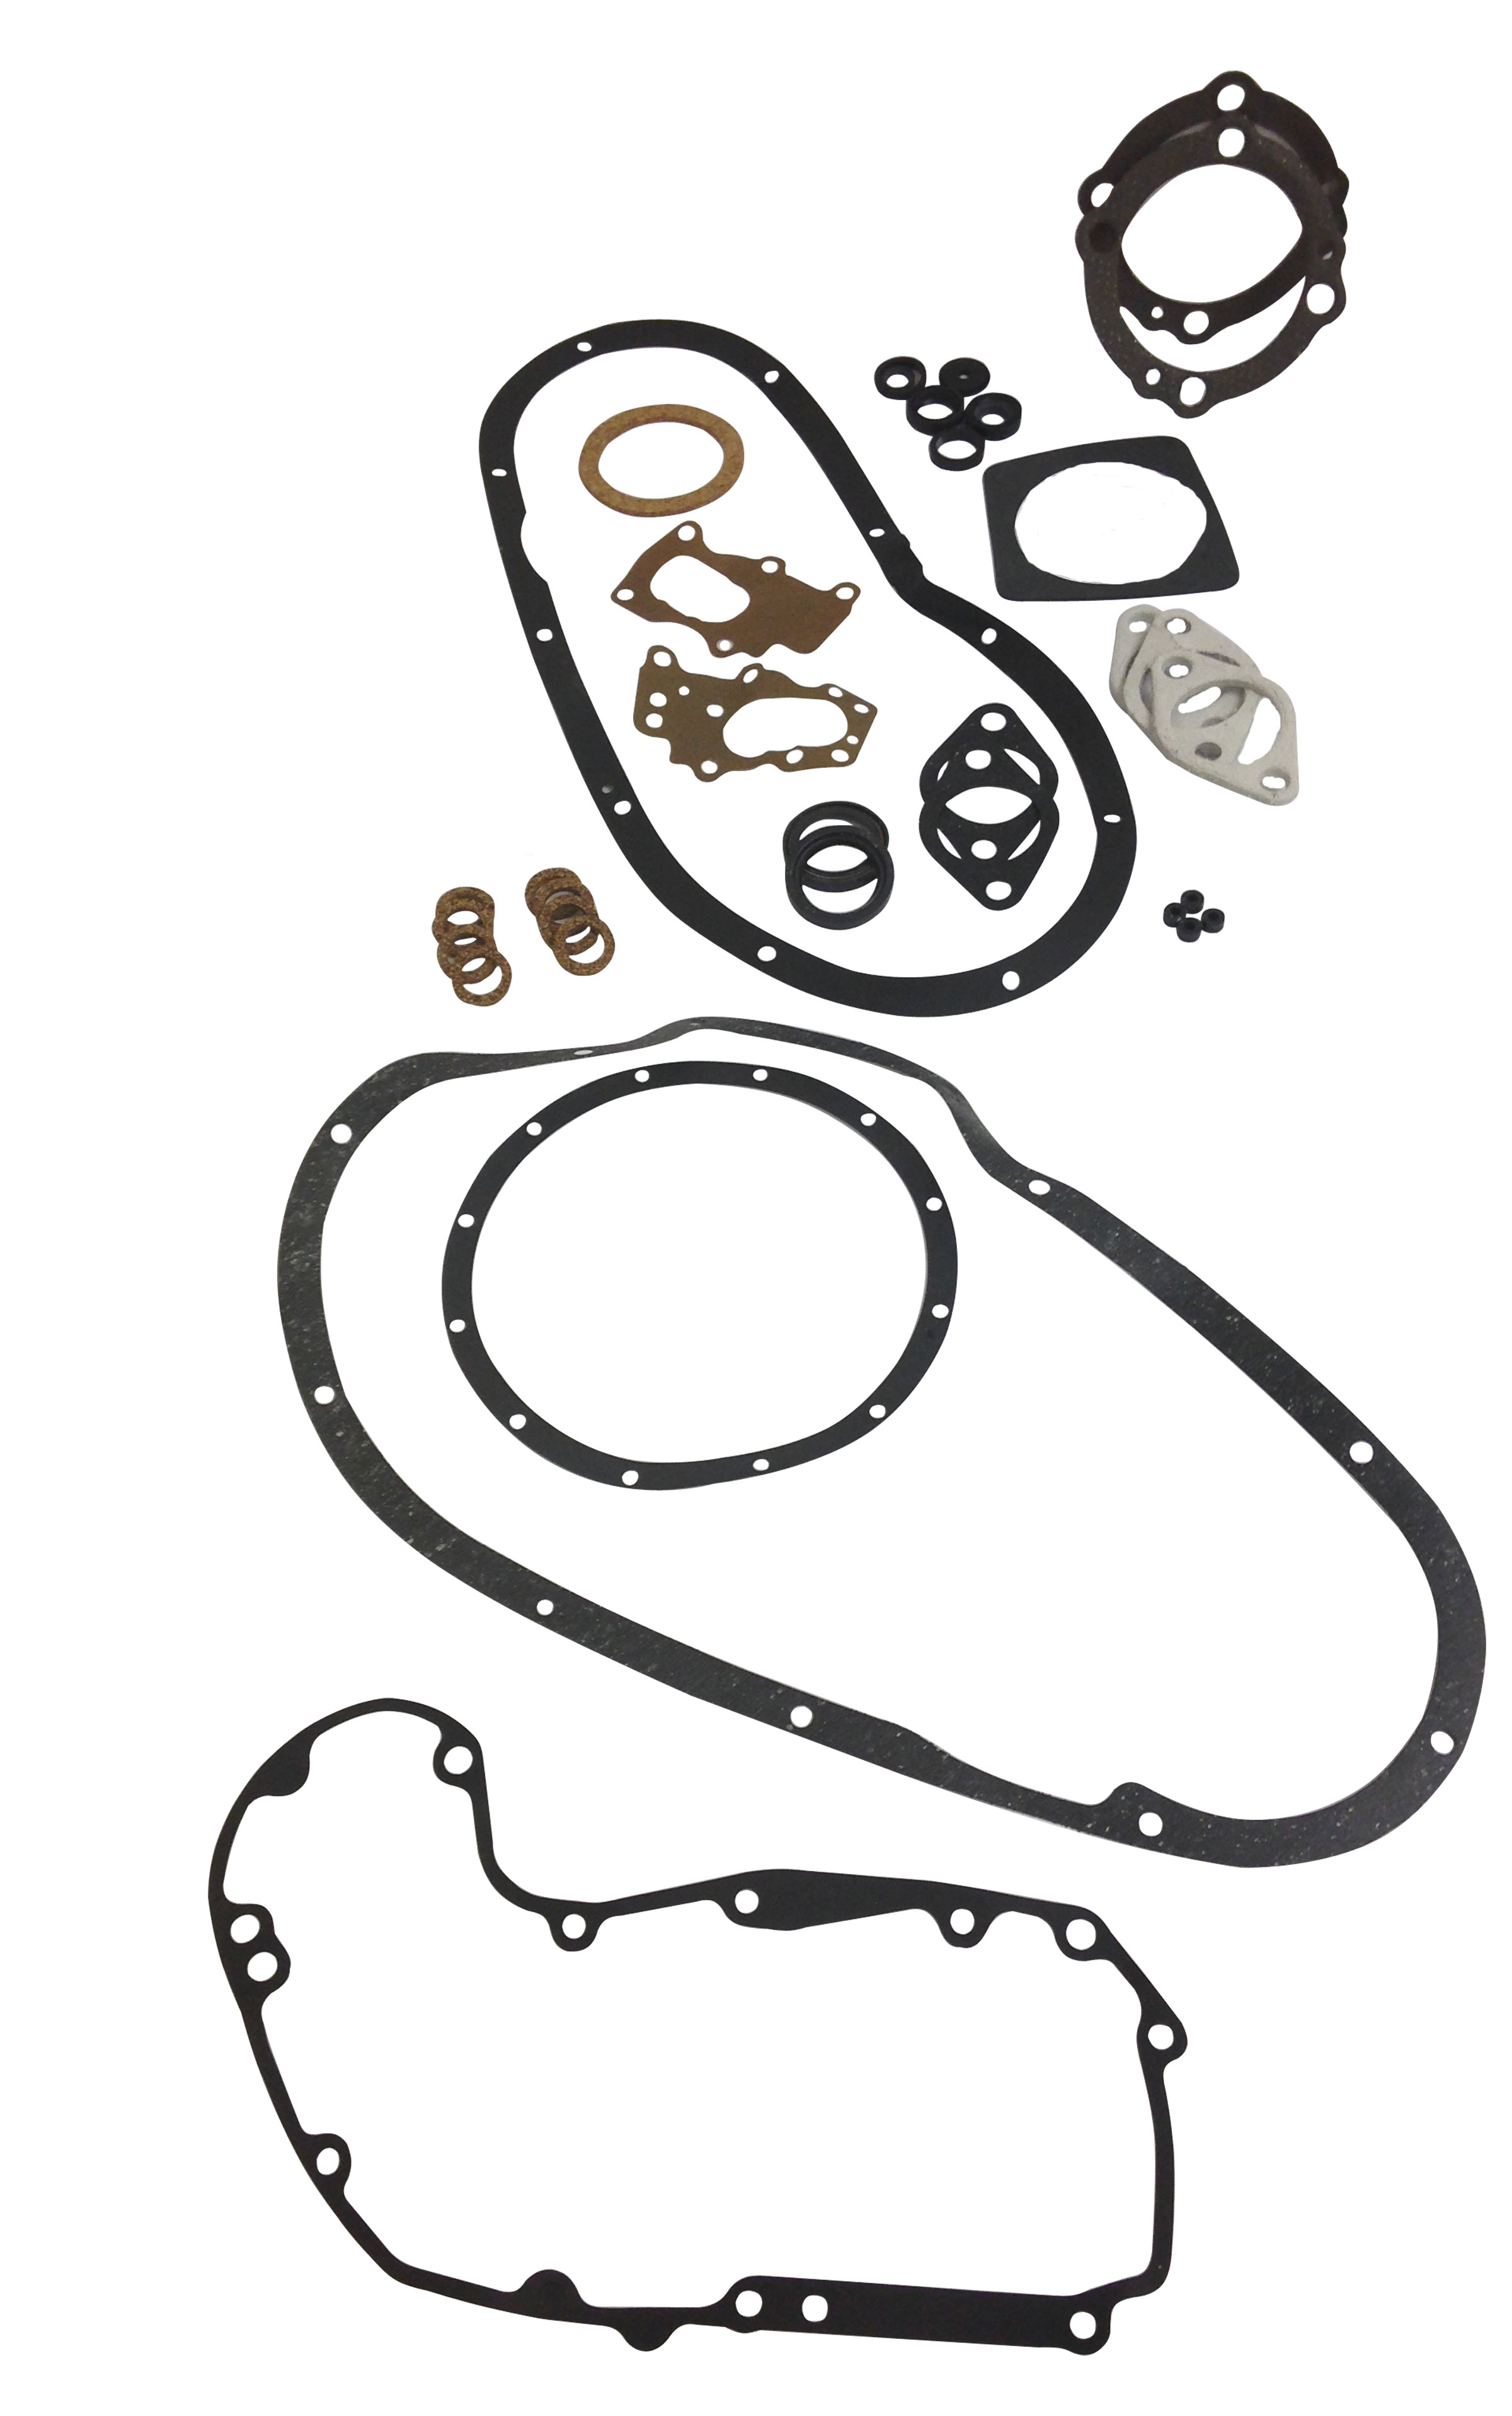 Screamin Eagle Performance Exhaust Gasket Kit Exhaust further Chopper Frames Ebay moreover plete Set Of Motor Gaskets And Seals p 5111 likewise 69454019230179934 together with Diagrams Of Trikes. on harley davidson sportster trike kits